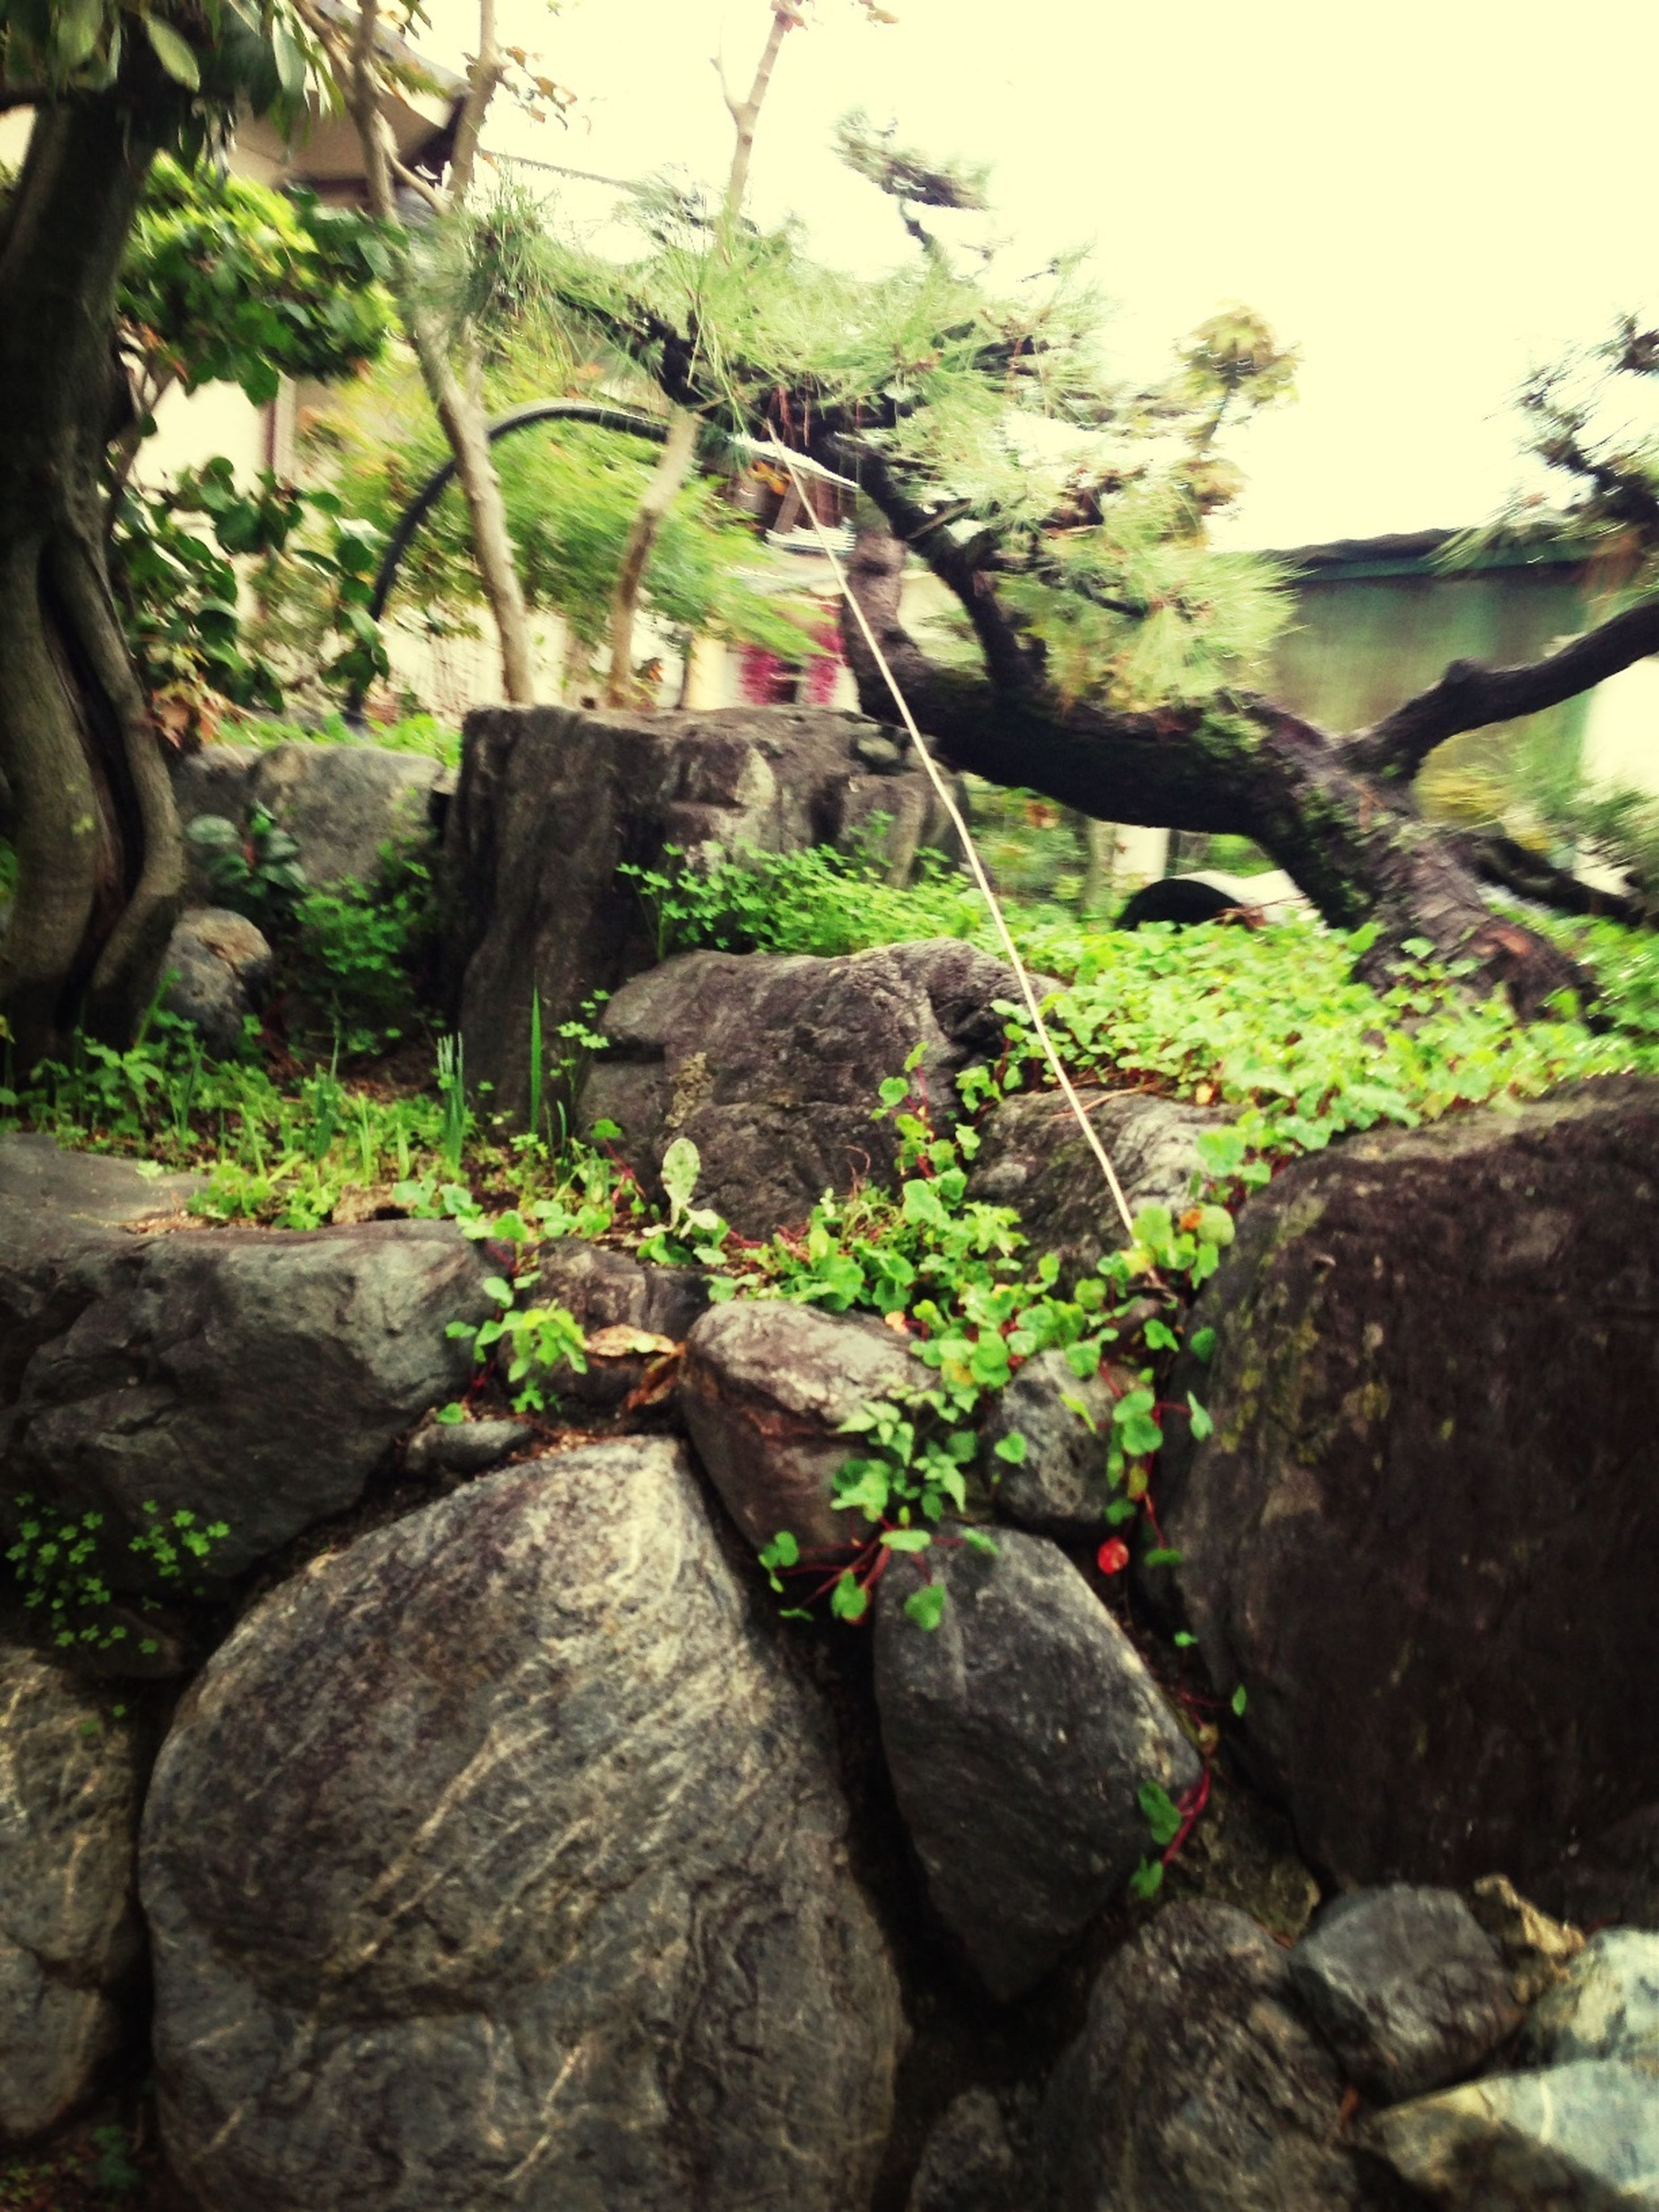 growth, plant, tree, rock - object, nature, green color, branch, beauty in nature, tree trunk, stone wall, rock, tranquility, growing, leaf, moss, day, outdoors, stone - object, stone, green